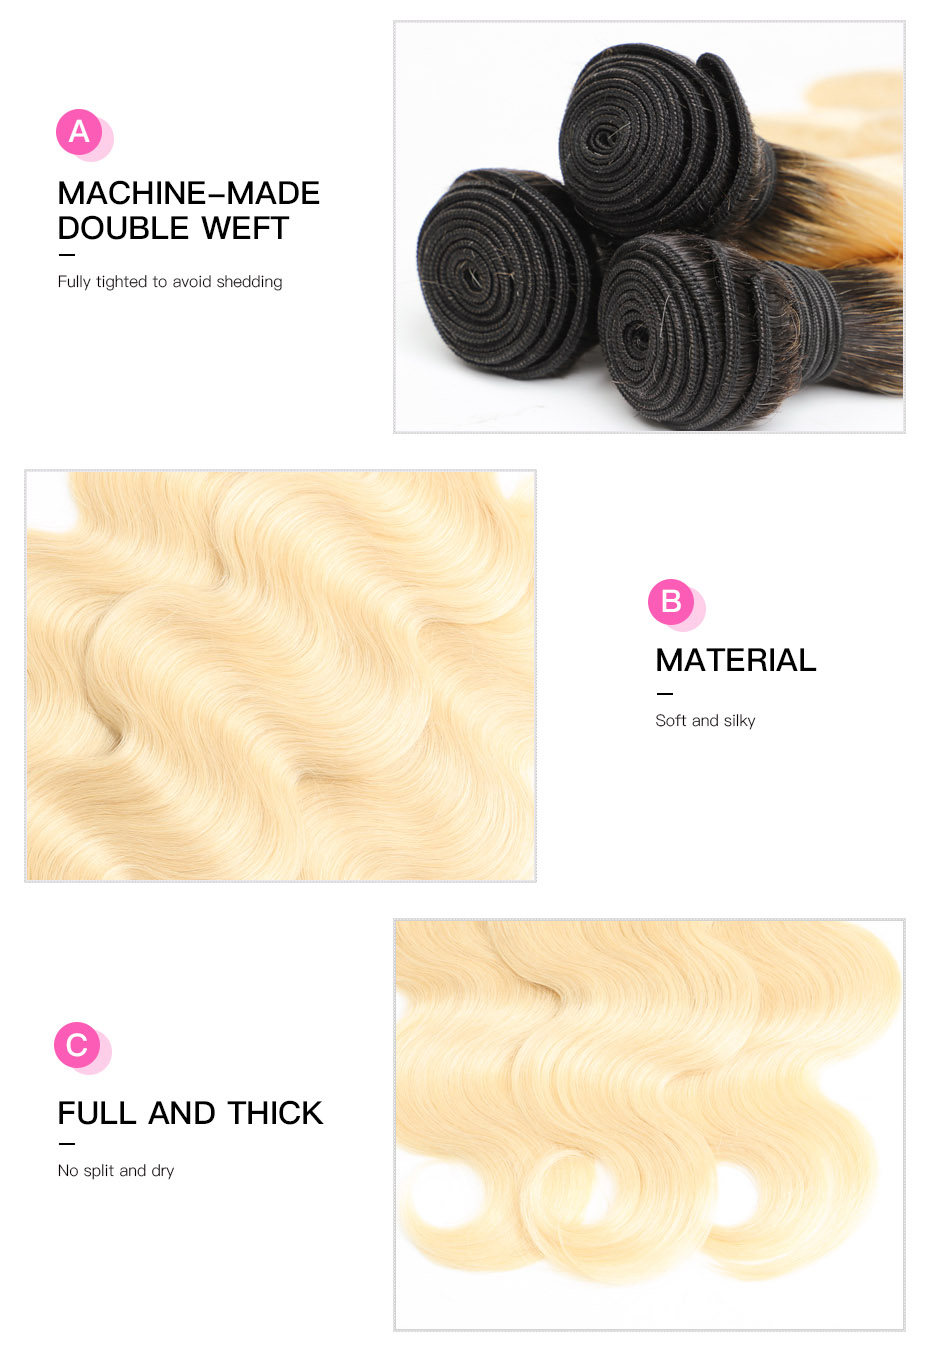 HTB1kCqrXZvrK1Rjy0Feq6ATmVXa5 Facebeauty Brazilian Human Hair 2 Tone Dark Roots Ombre Blonde Hair 3 Bundles With Lace Closure 1B/613 Body Wave Color Hair Weft